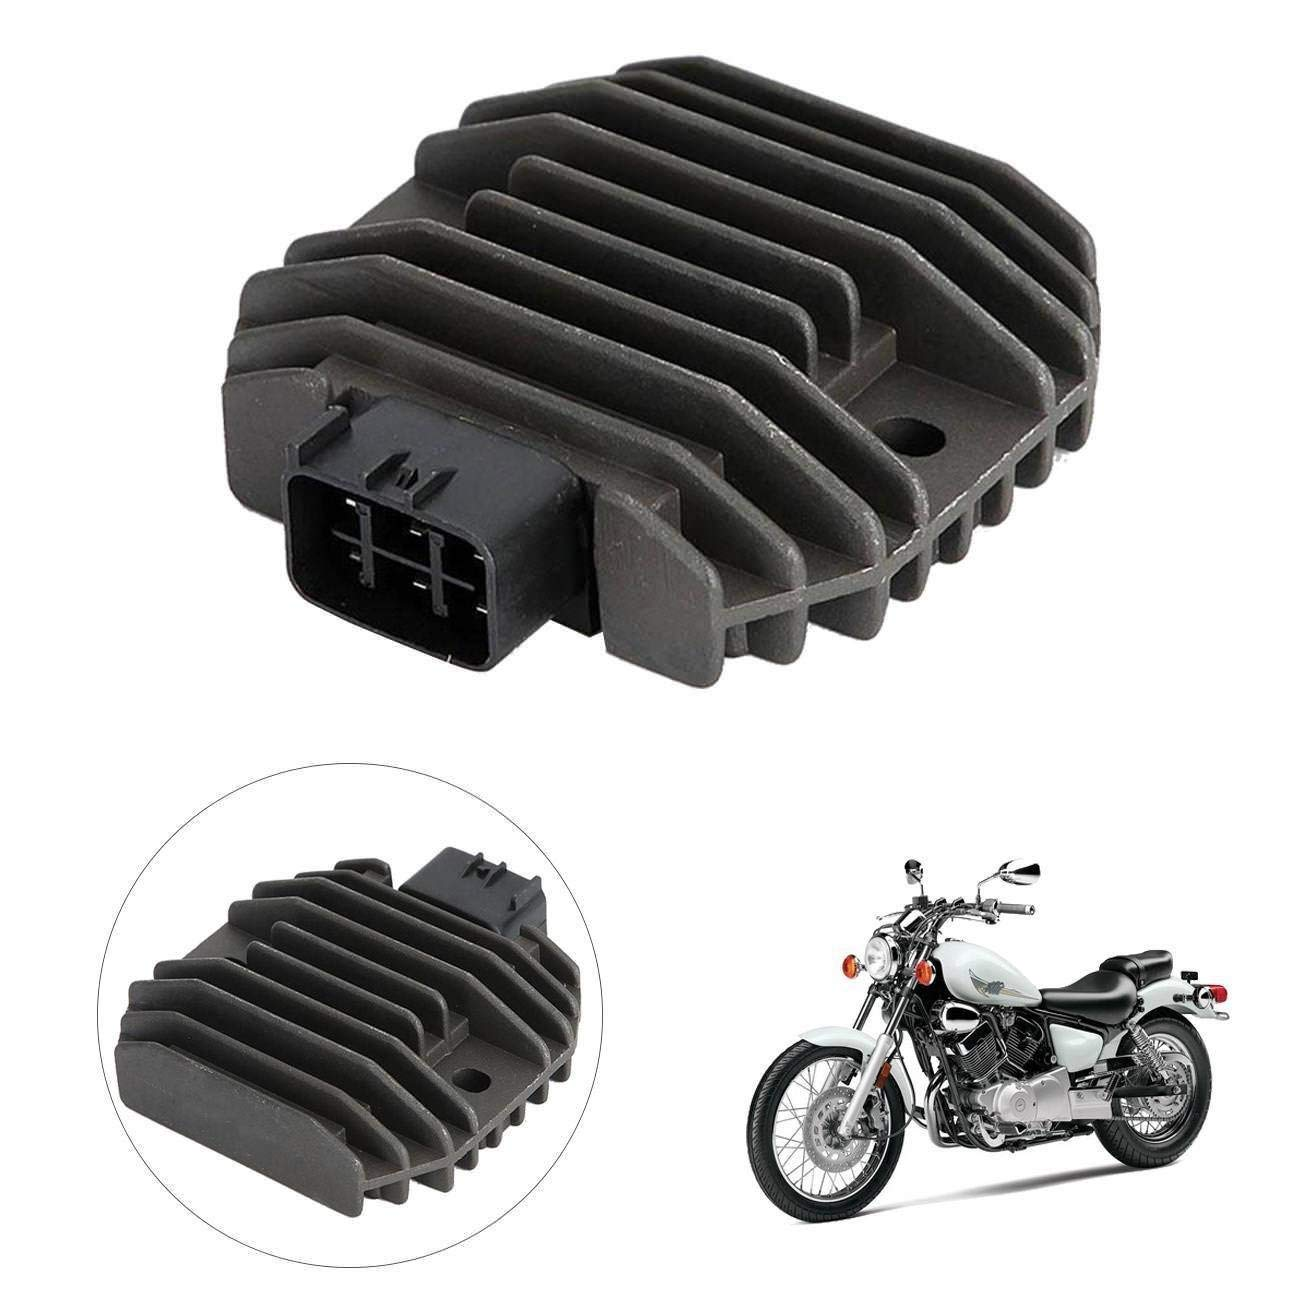 Brand New Voltage Regulator Rectifier for Yamaha GRIZZLY 660 YFM660 2002-2008 02 03 04 05 06 07 08